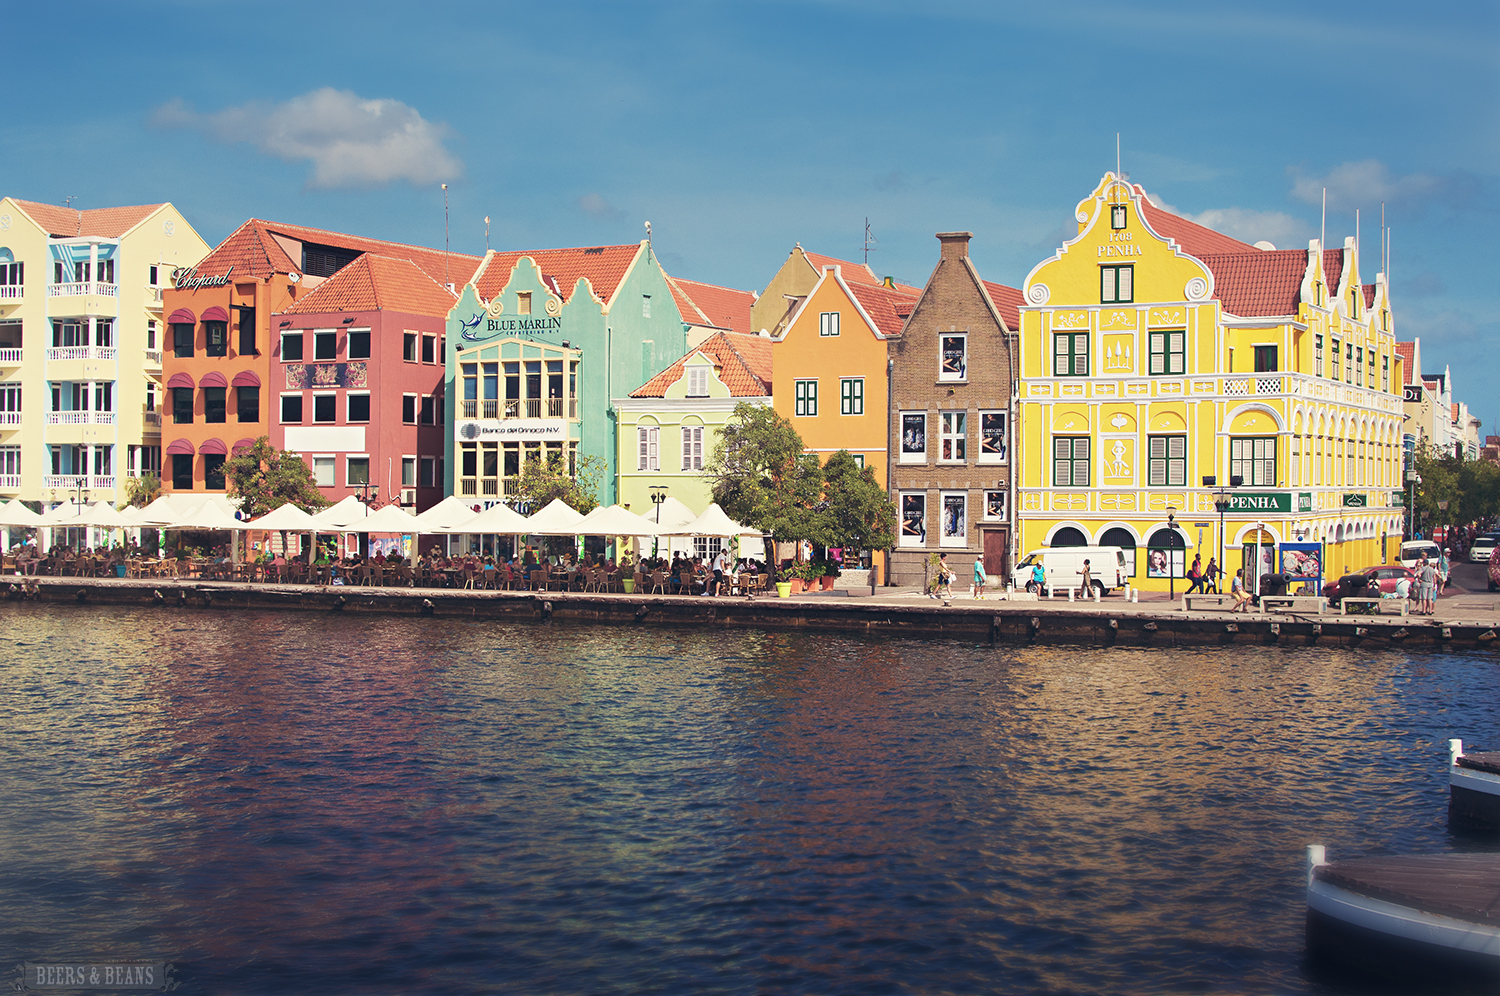 Colorful painted lady houses at the port of Curacao.